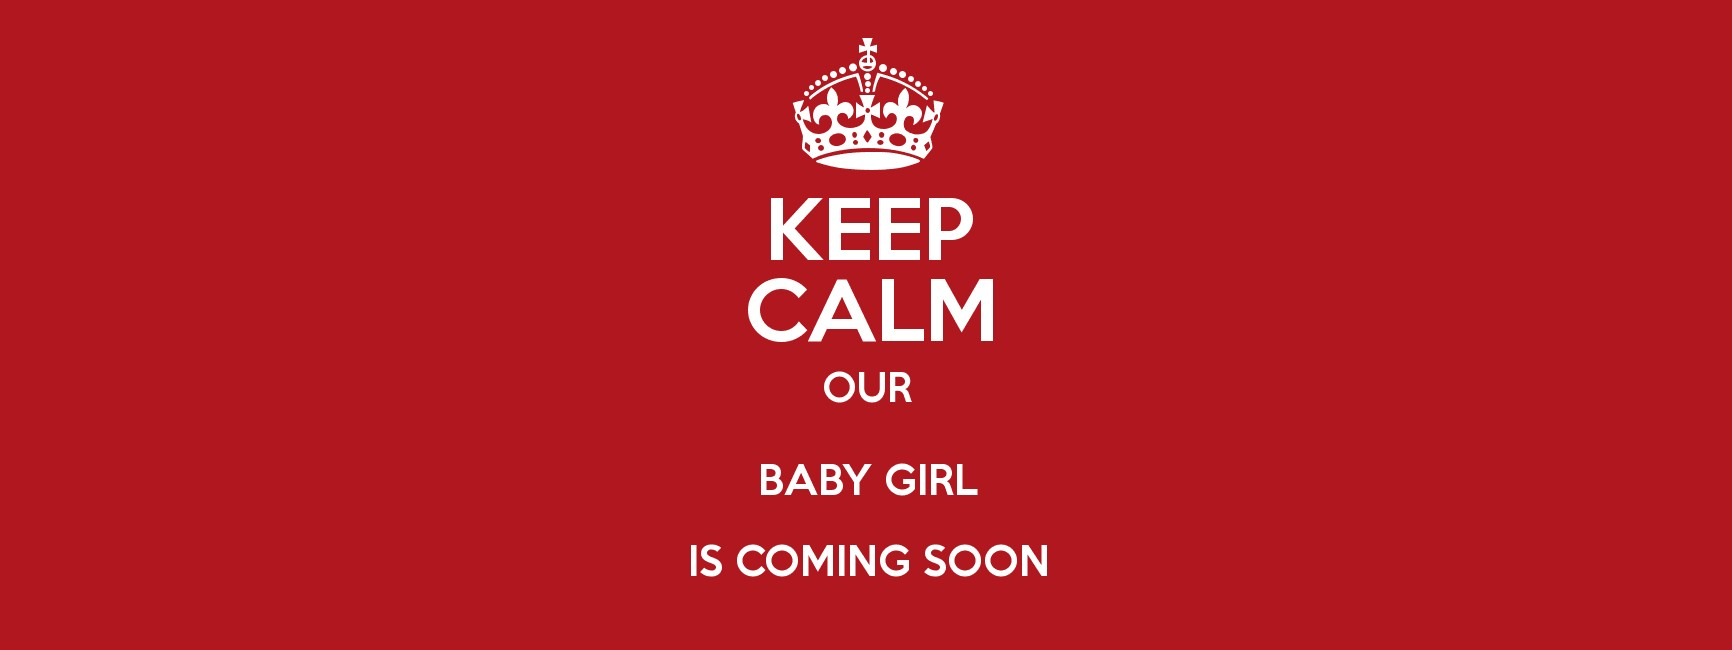 Arriving Soon Quotes Image Quotes At Hippoquotes Com: Arriving Soon Baby Quotes. QuotesGram